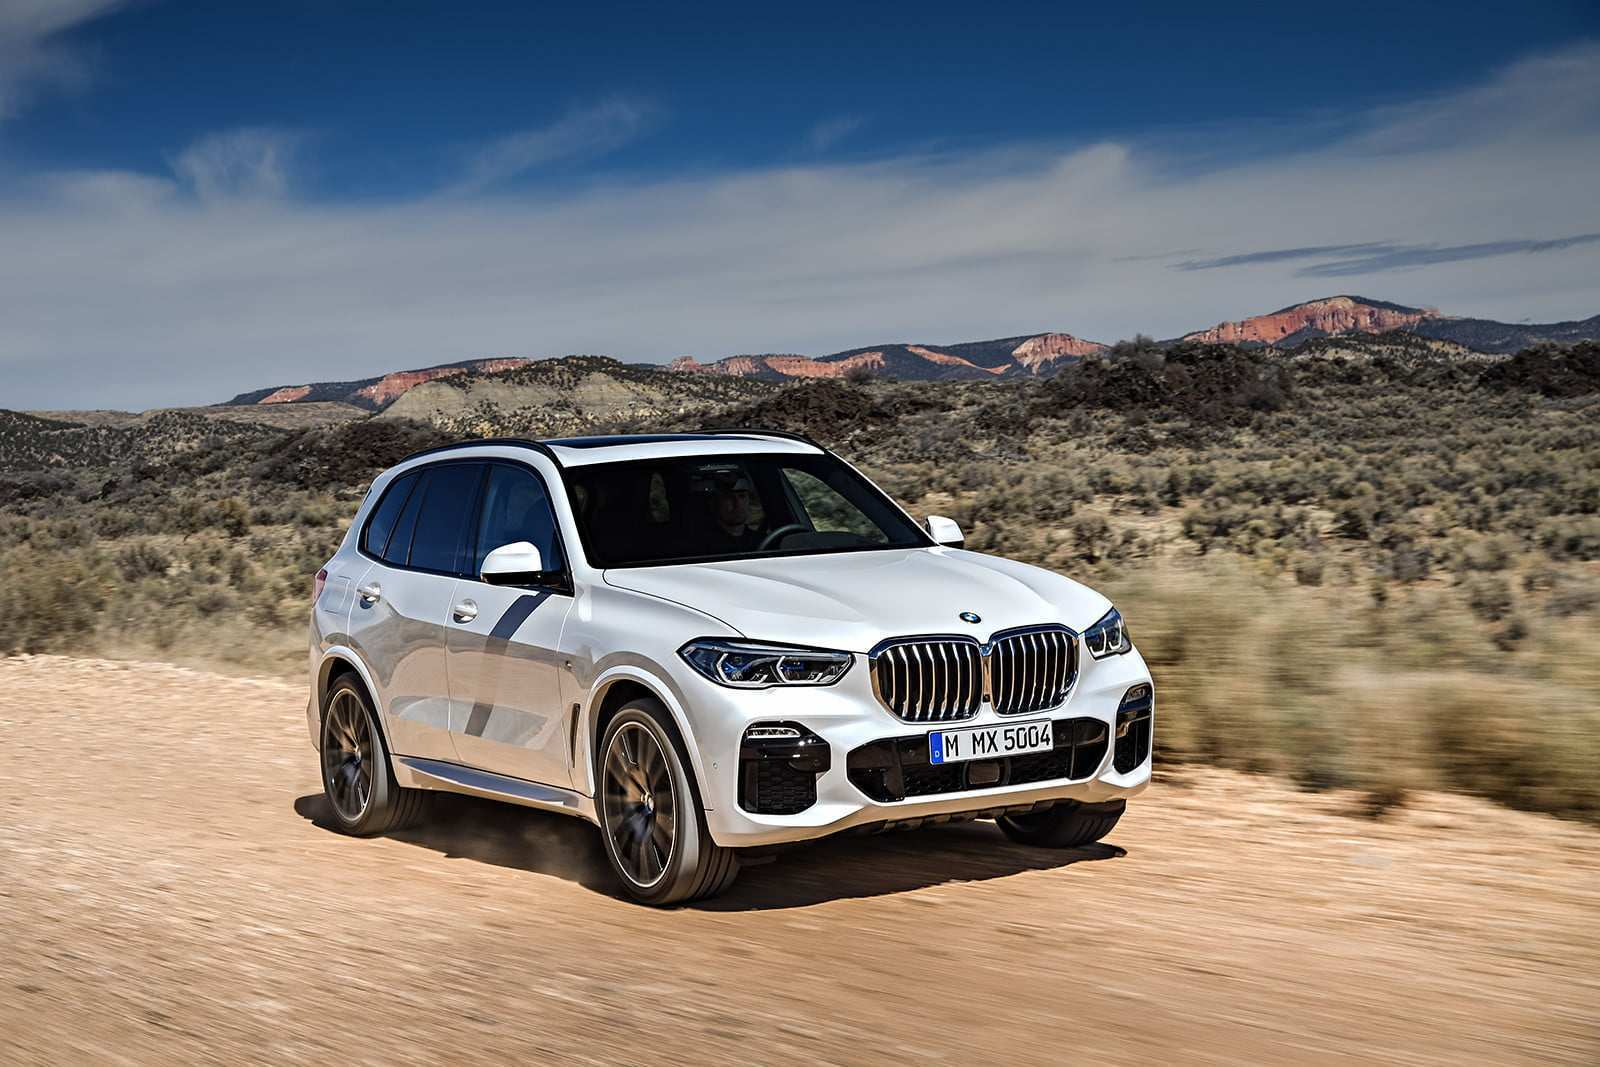 43 New The Bmw X5 2019 Launch Date Release Date Review for The Bmw X5 2019 Launch Date Release Date